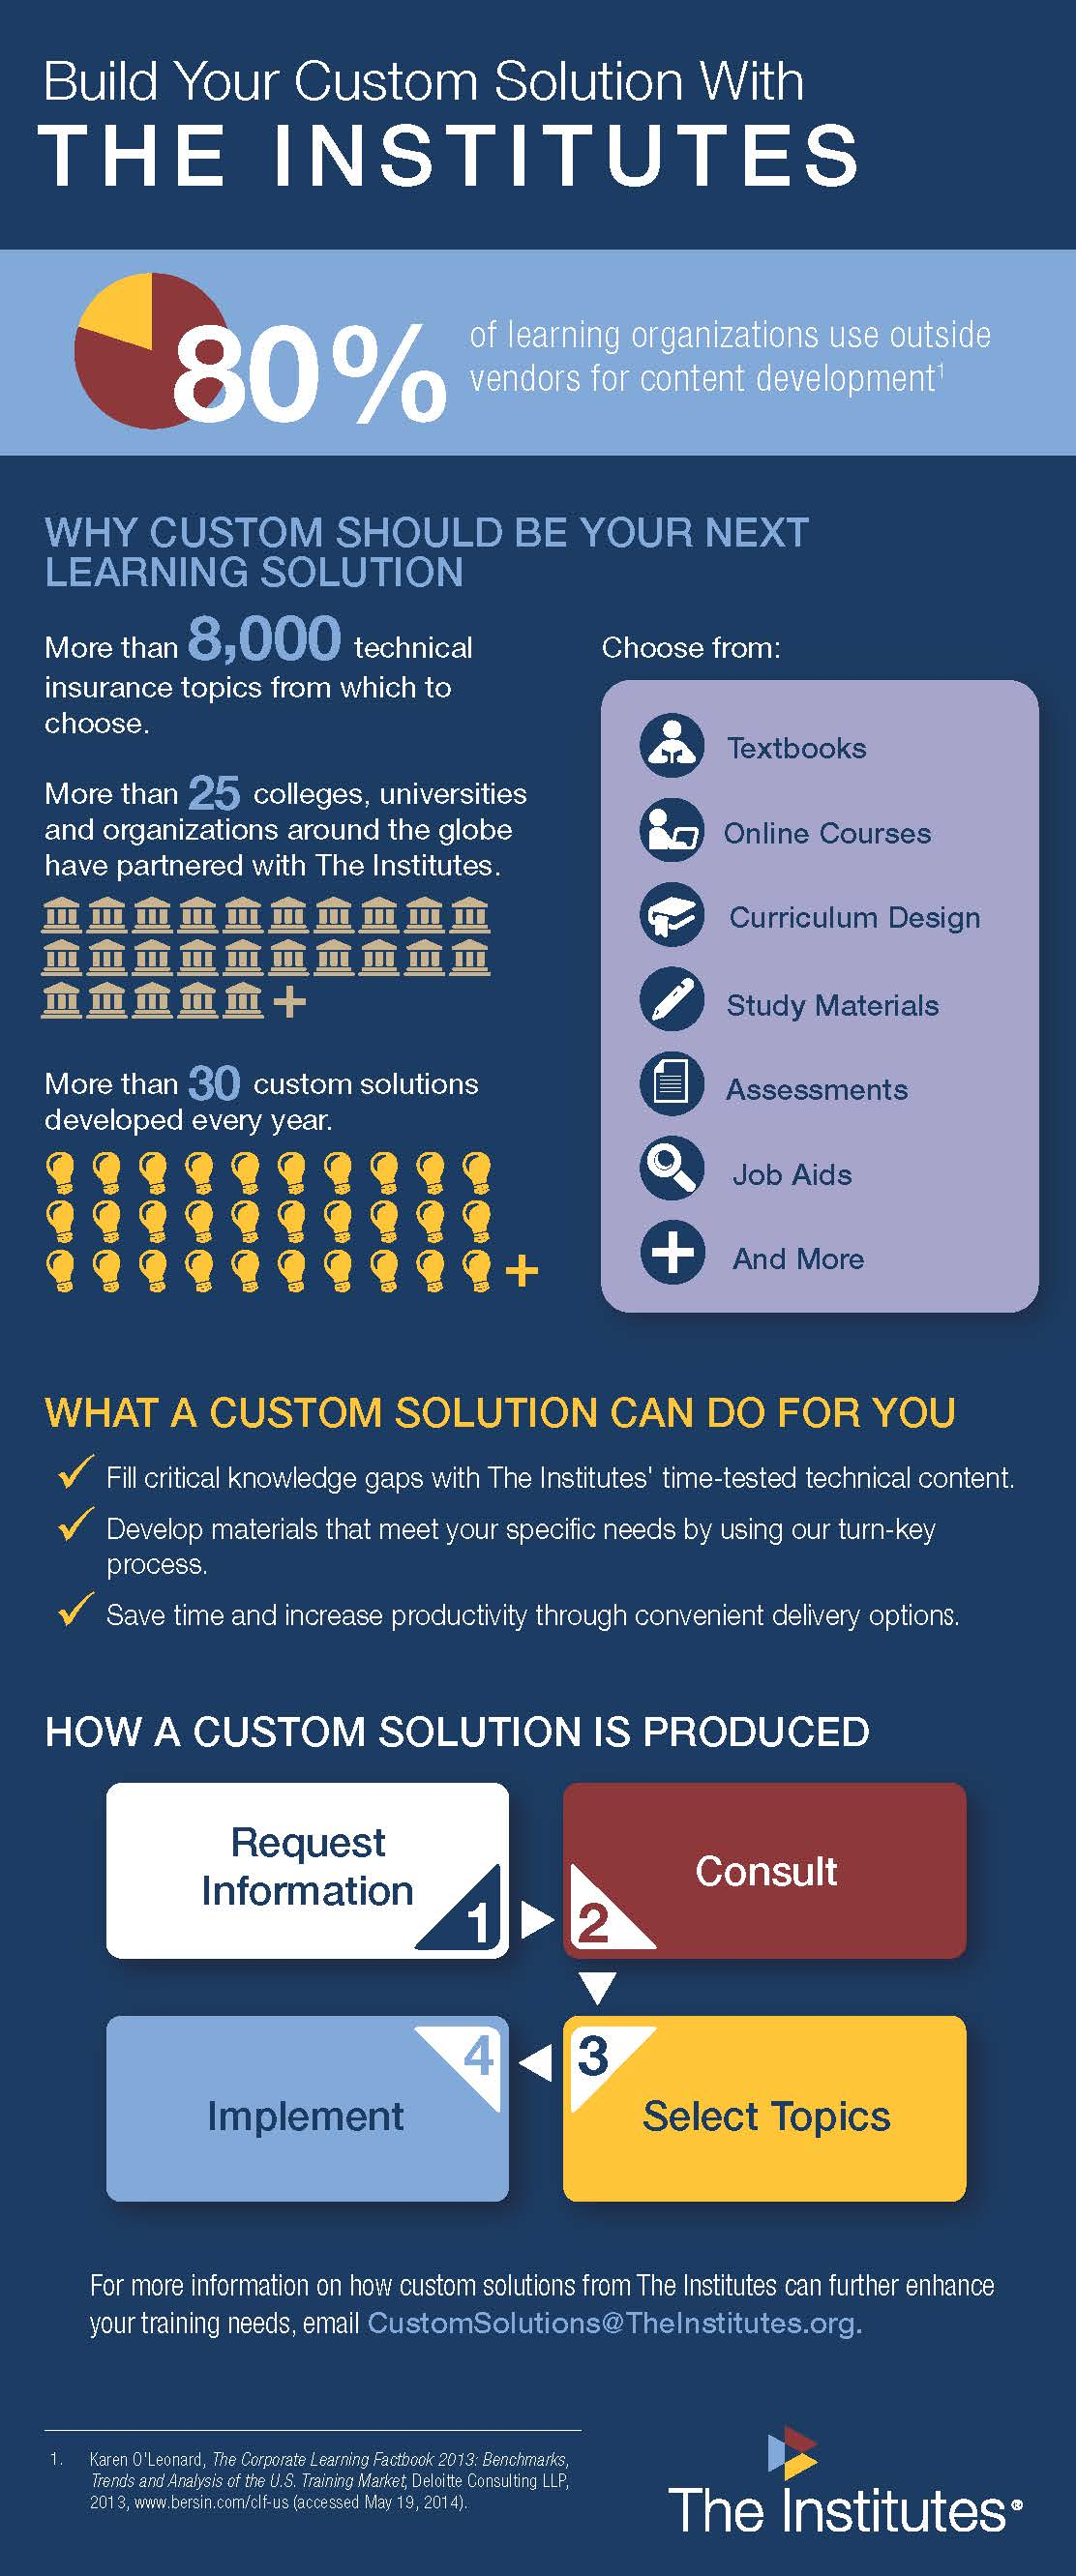 Custom Solutions From The Institutes